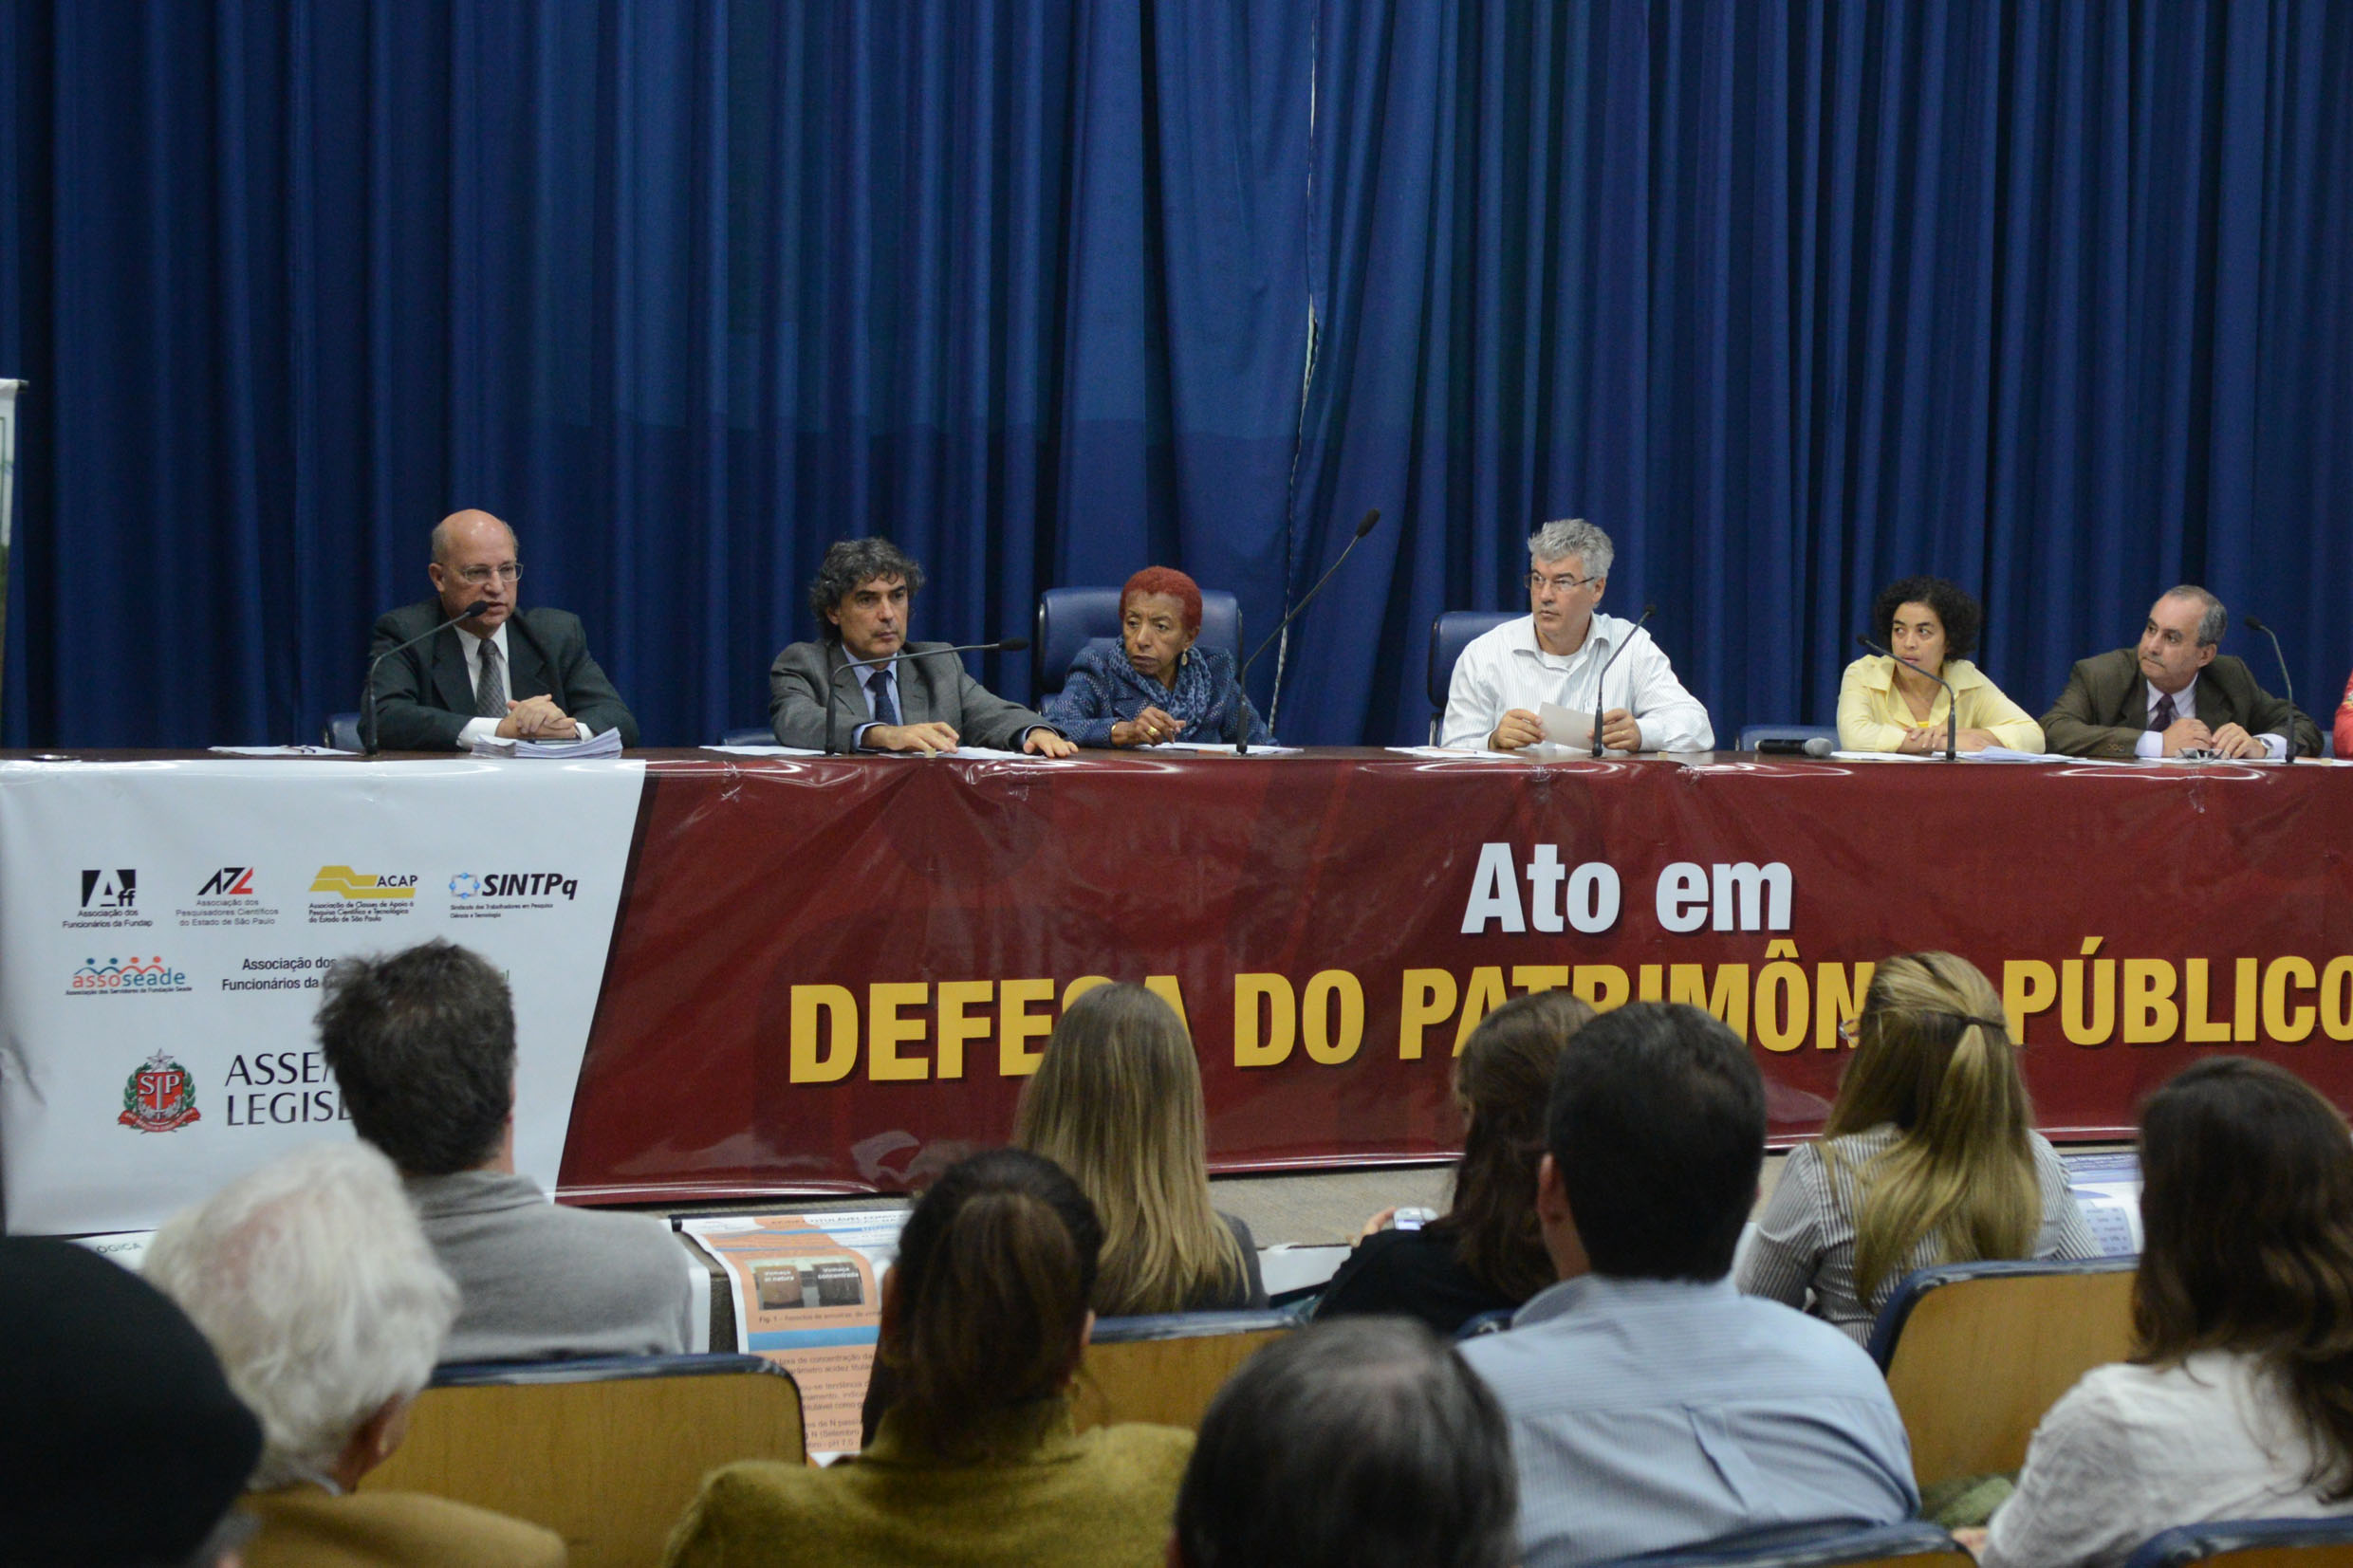 Ato público na Assembleia<a style='float:right' href='https://www3.al.sp.gov.br/repositorio/noticia/N-05-2016/fg189112.jpg' target=_blank><img src='/_img/material-file-download-white.png' width='14px' alt='Clique para baixar a imagem'></a>